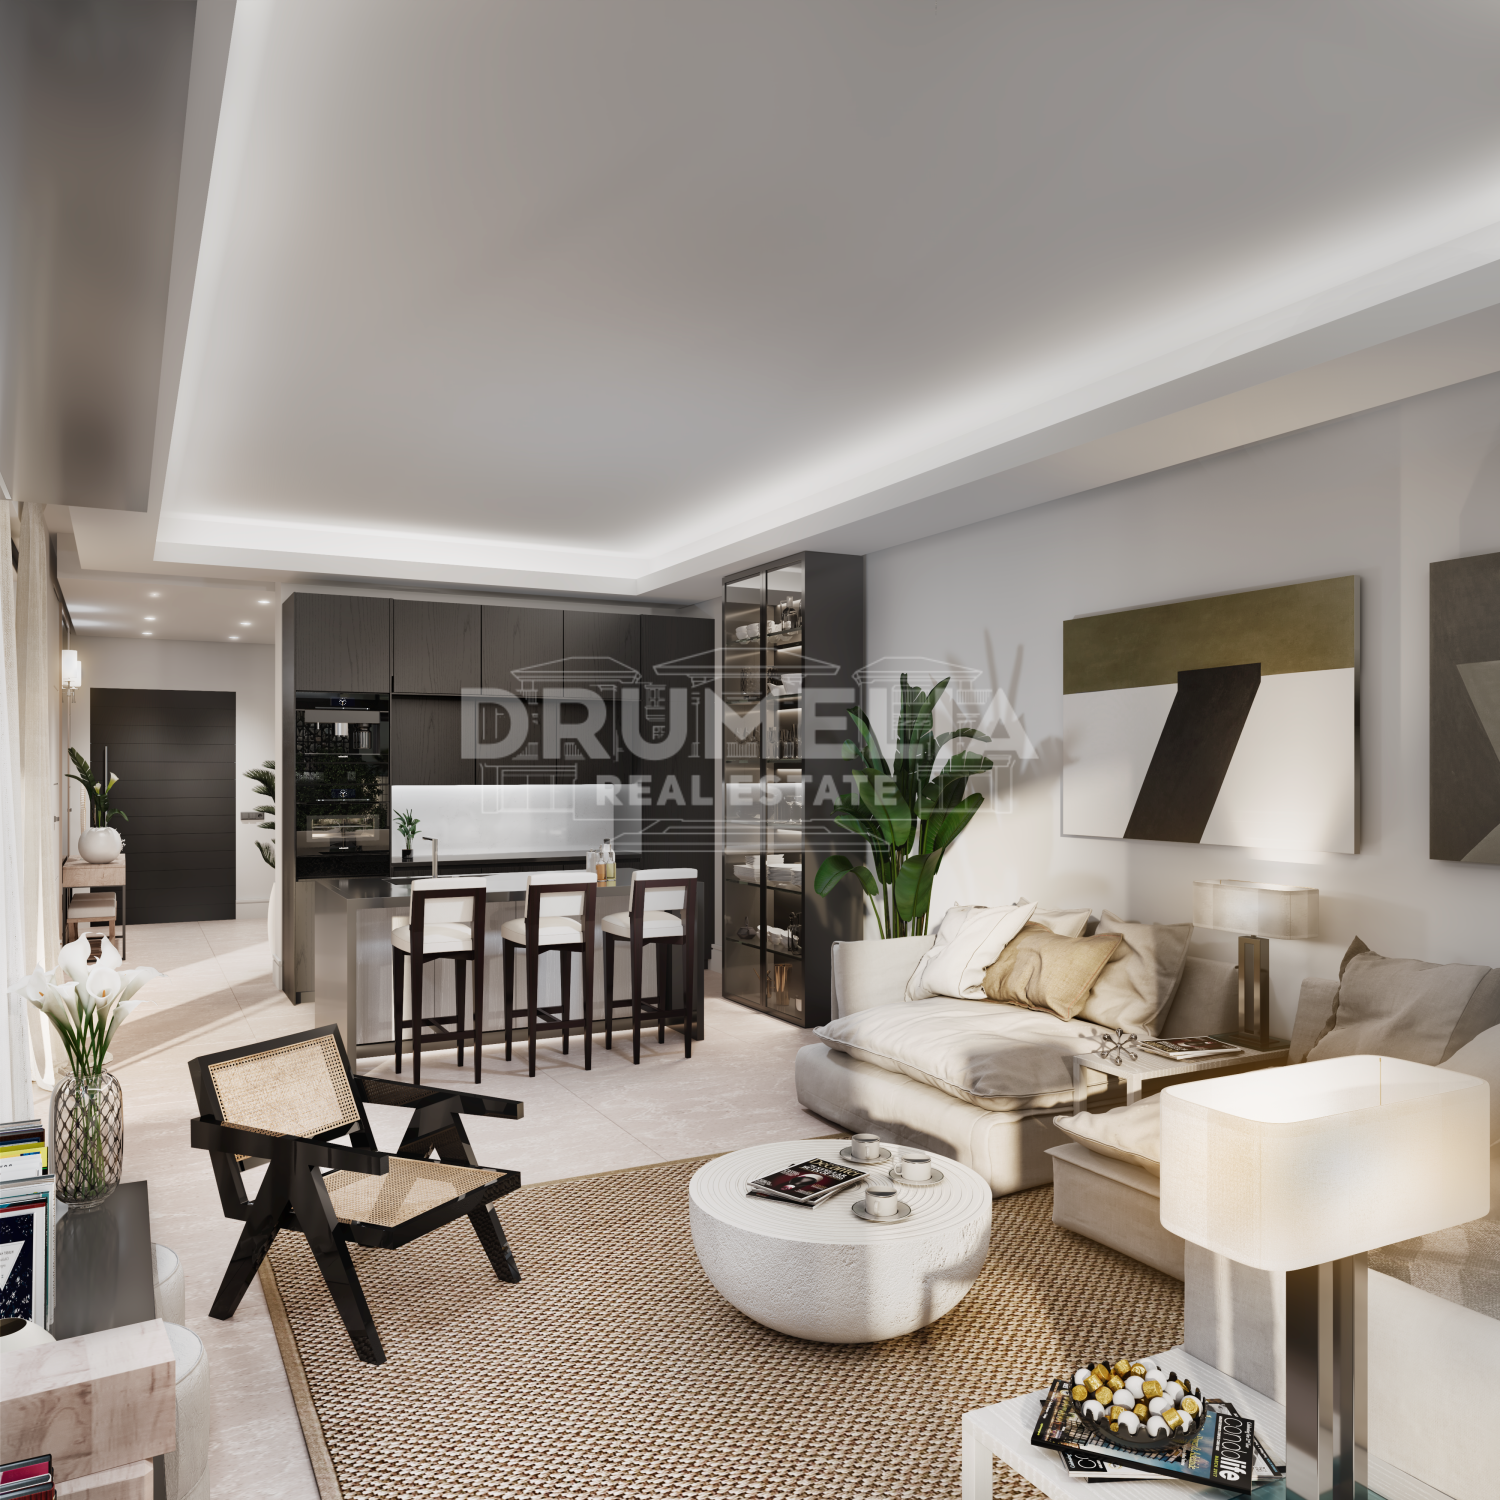 Marbella Golden Mile, Brand-new Contemporary Luxury Villa, Rio Verde Playa, Golden Mile, Marbella